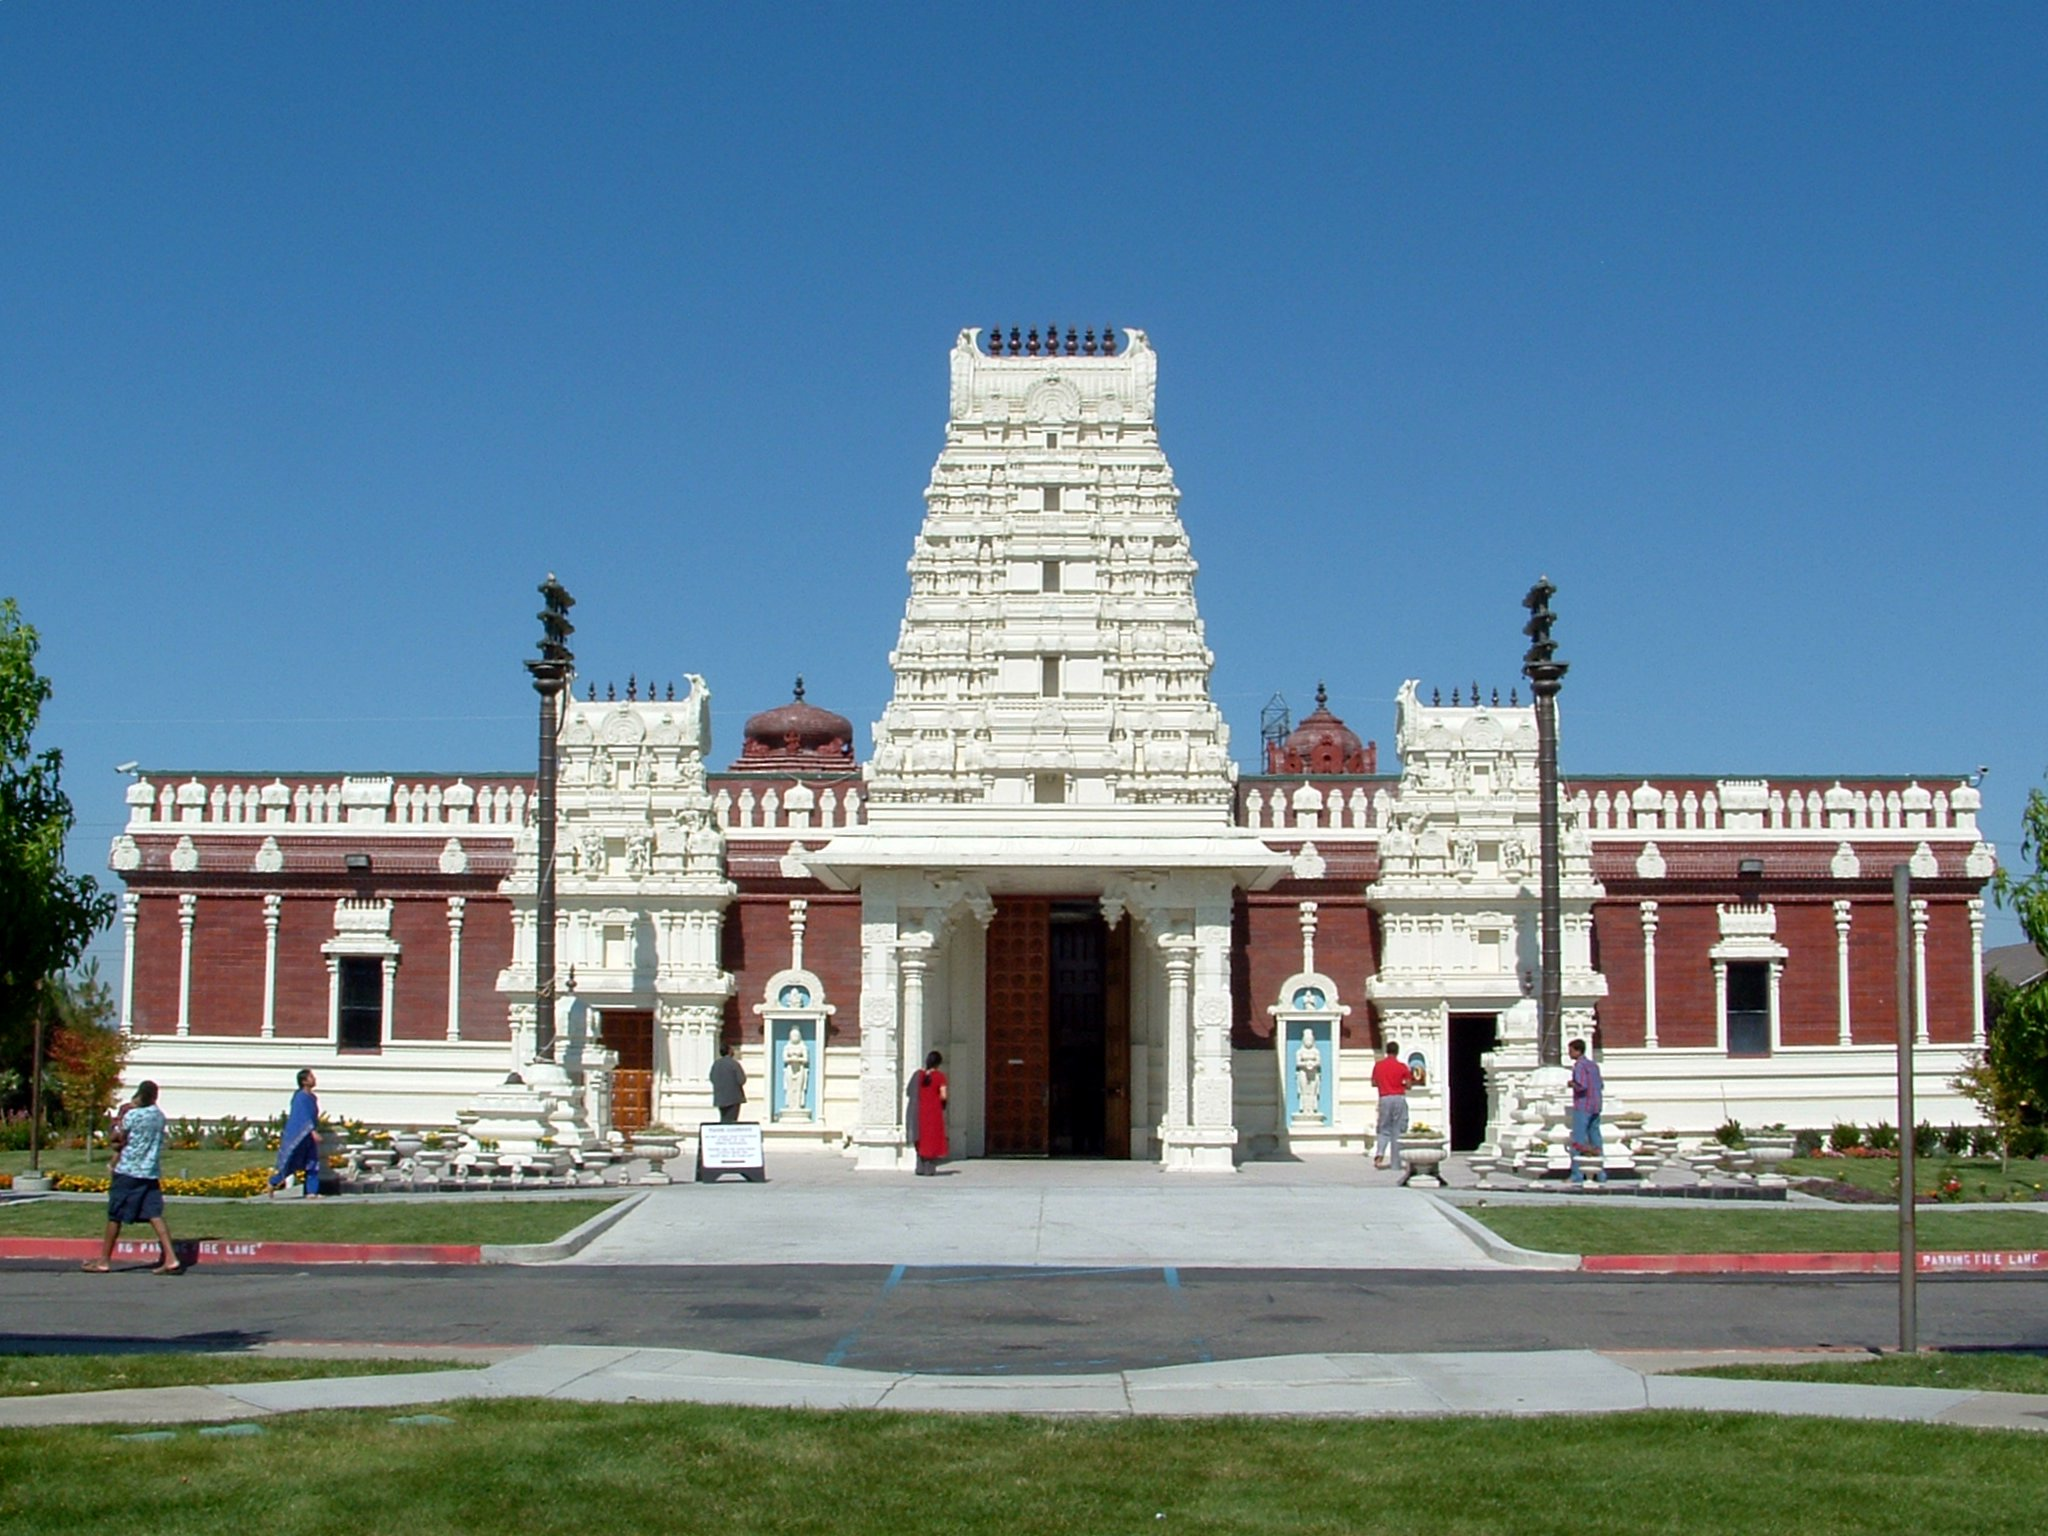 File:Sa livermore temple.jpg - Wikipedia